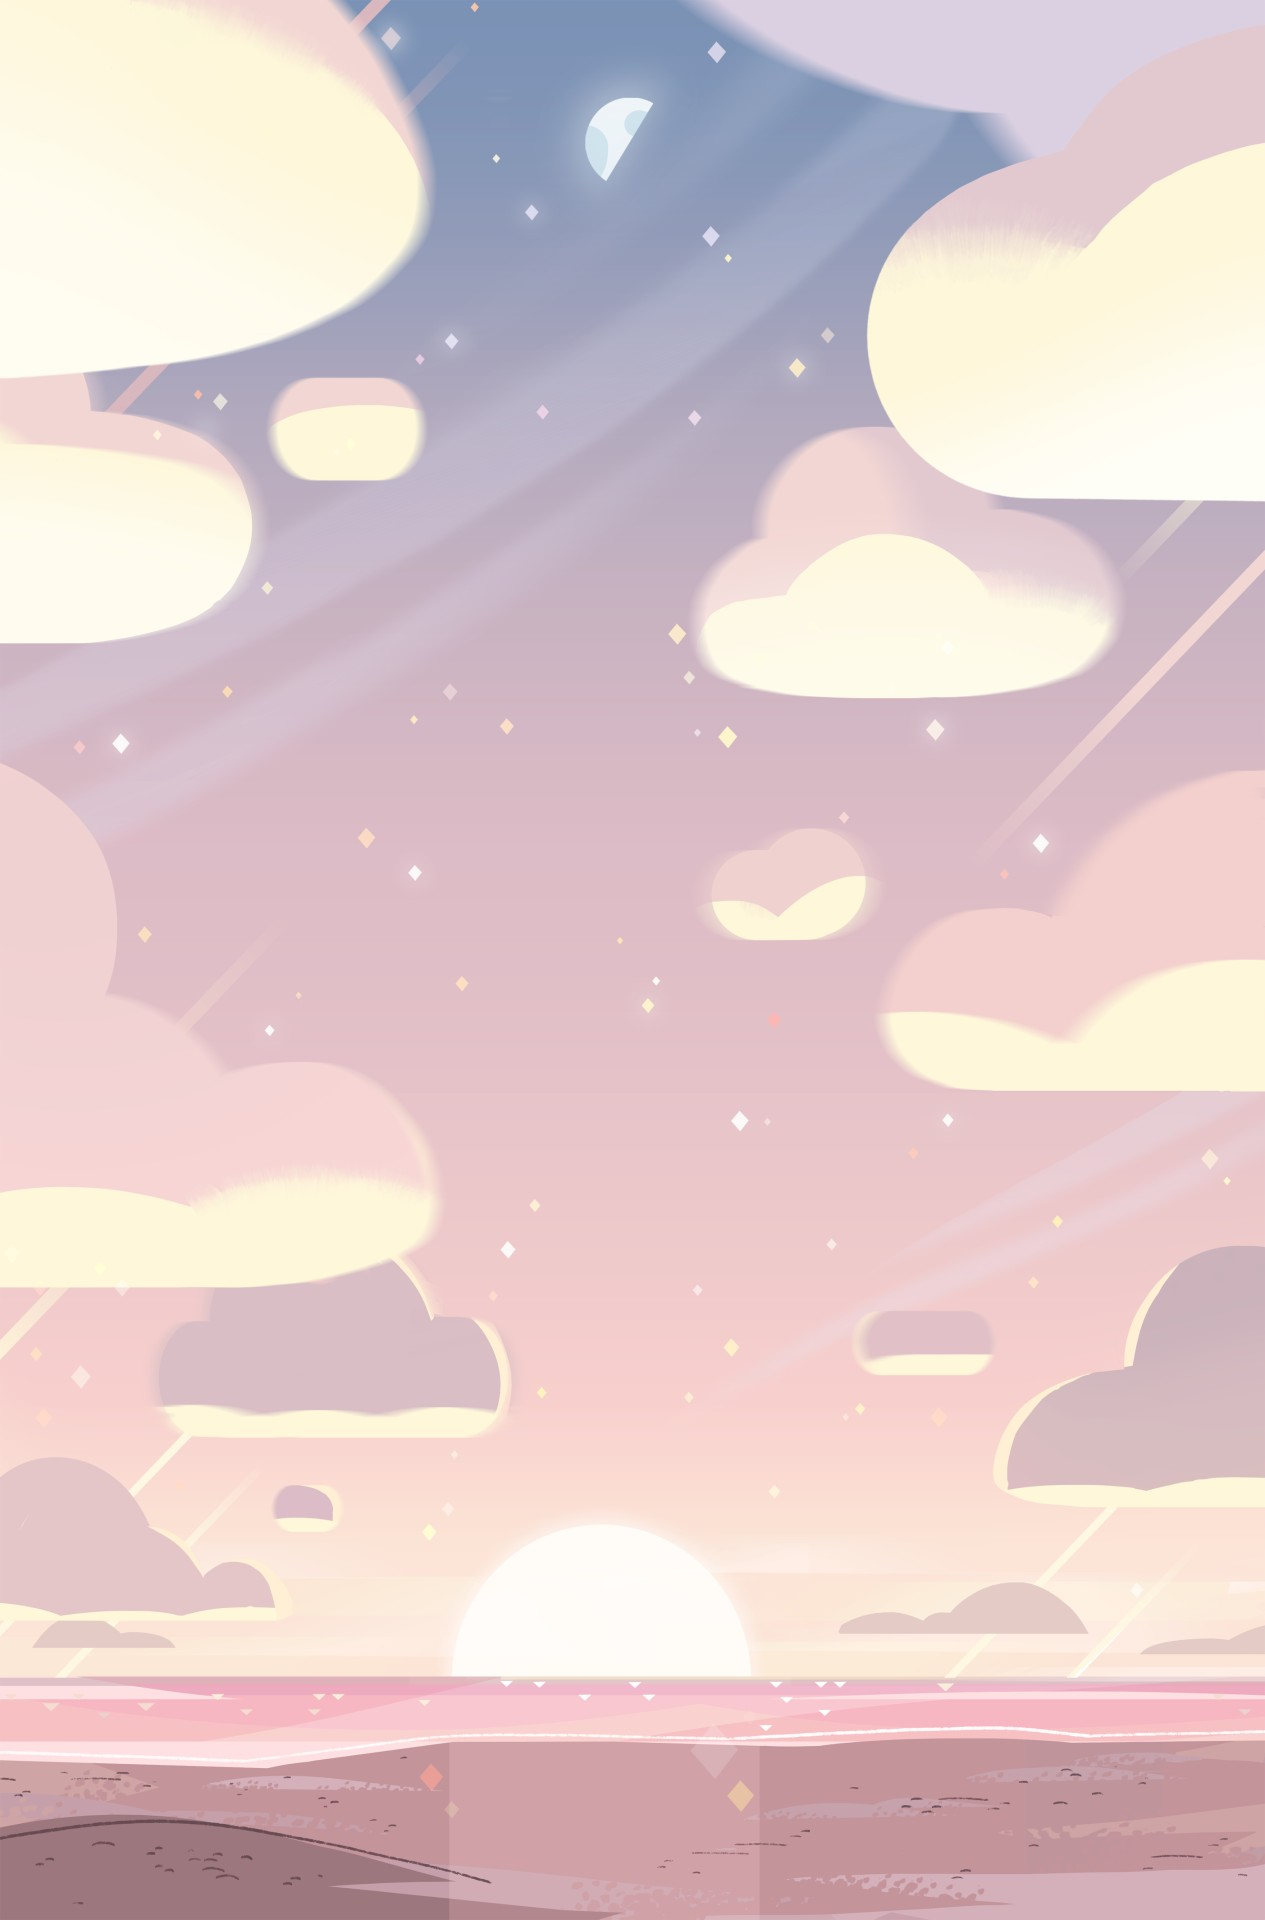 Steven universe background art download free awesome - Steven universe wallpapers hd ...